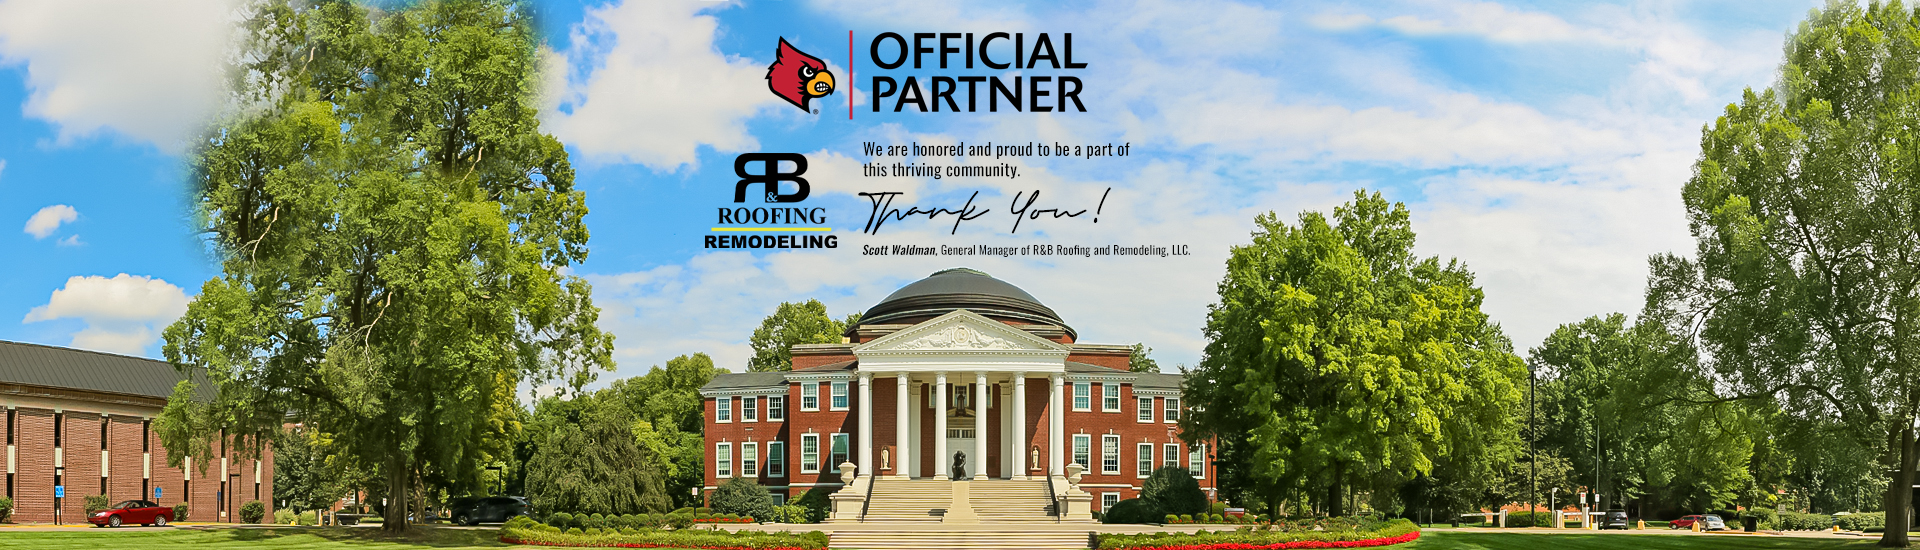 R&B Roofing Remodeling Official Partner of Louisville Cardinals